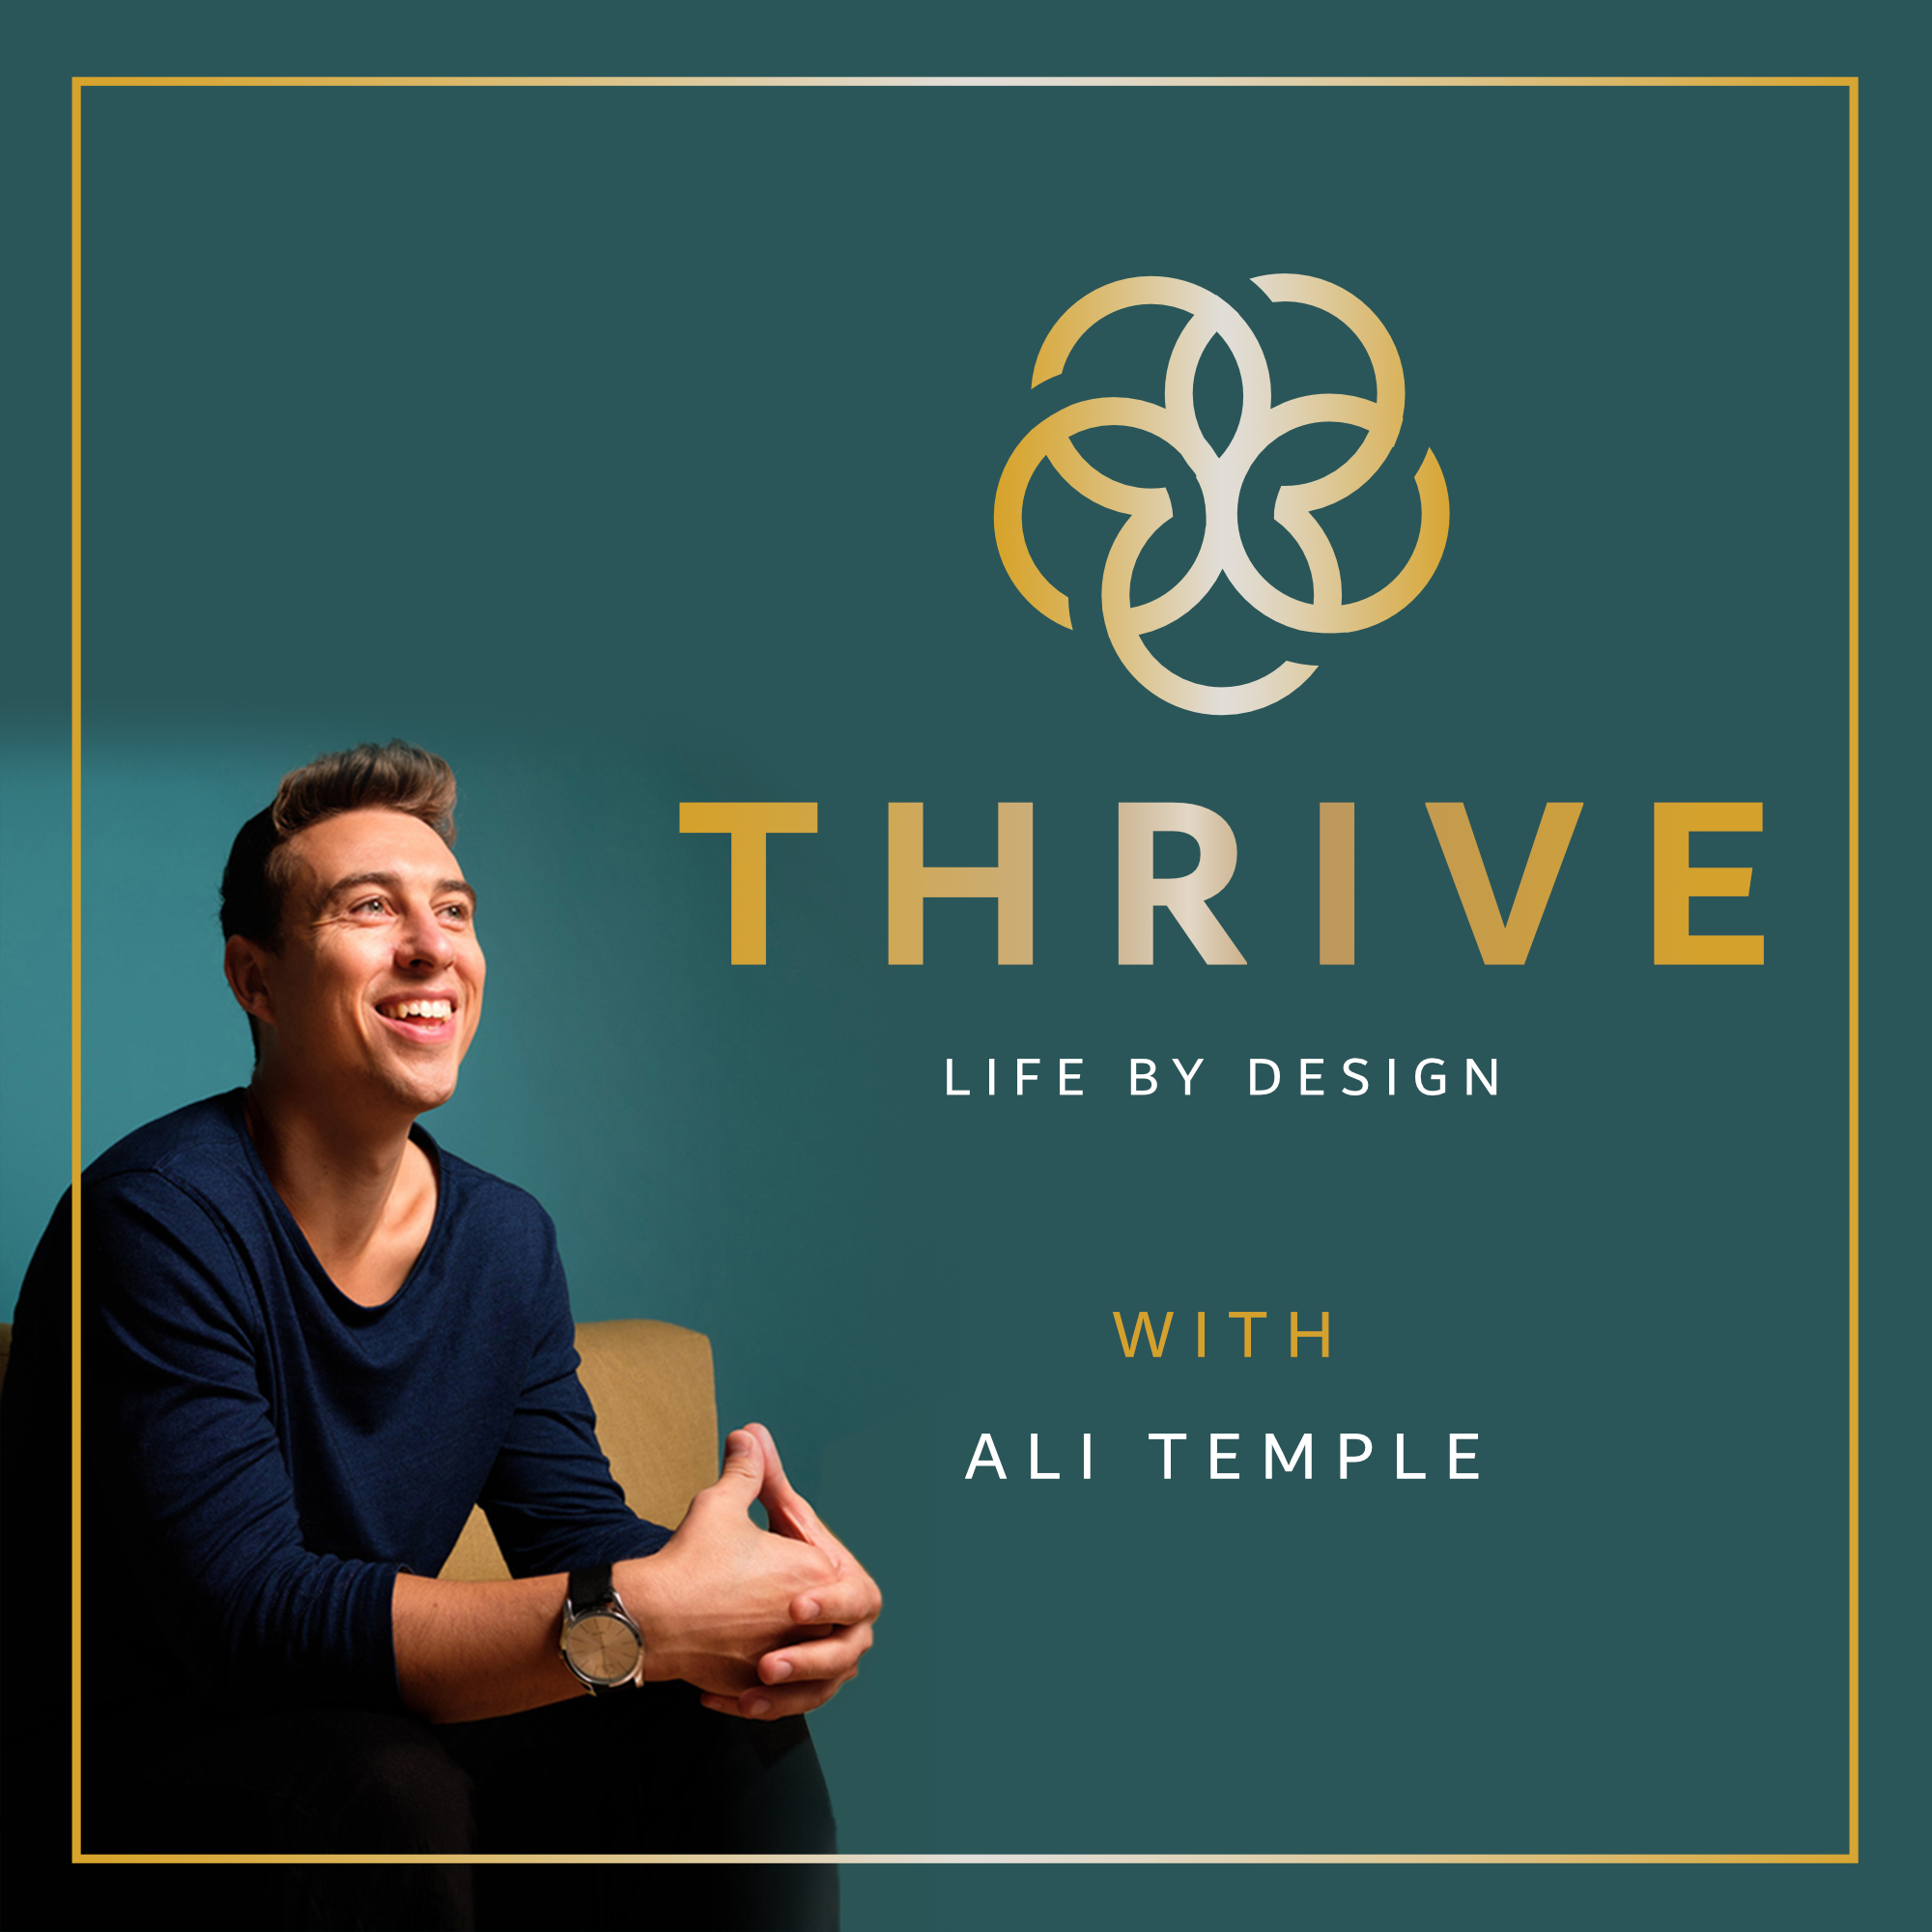 Thrive Life by Design